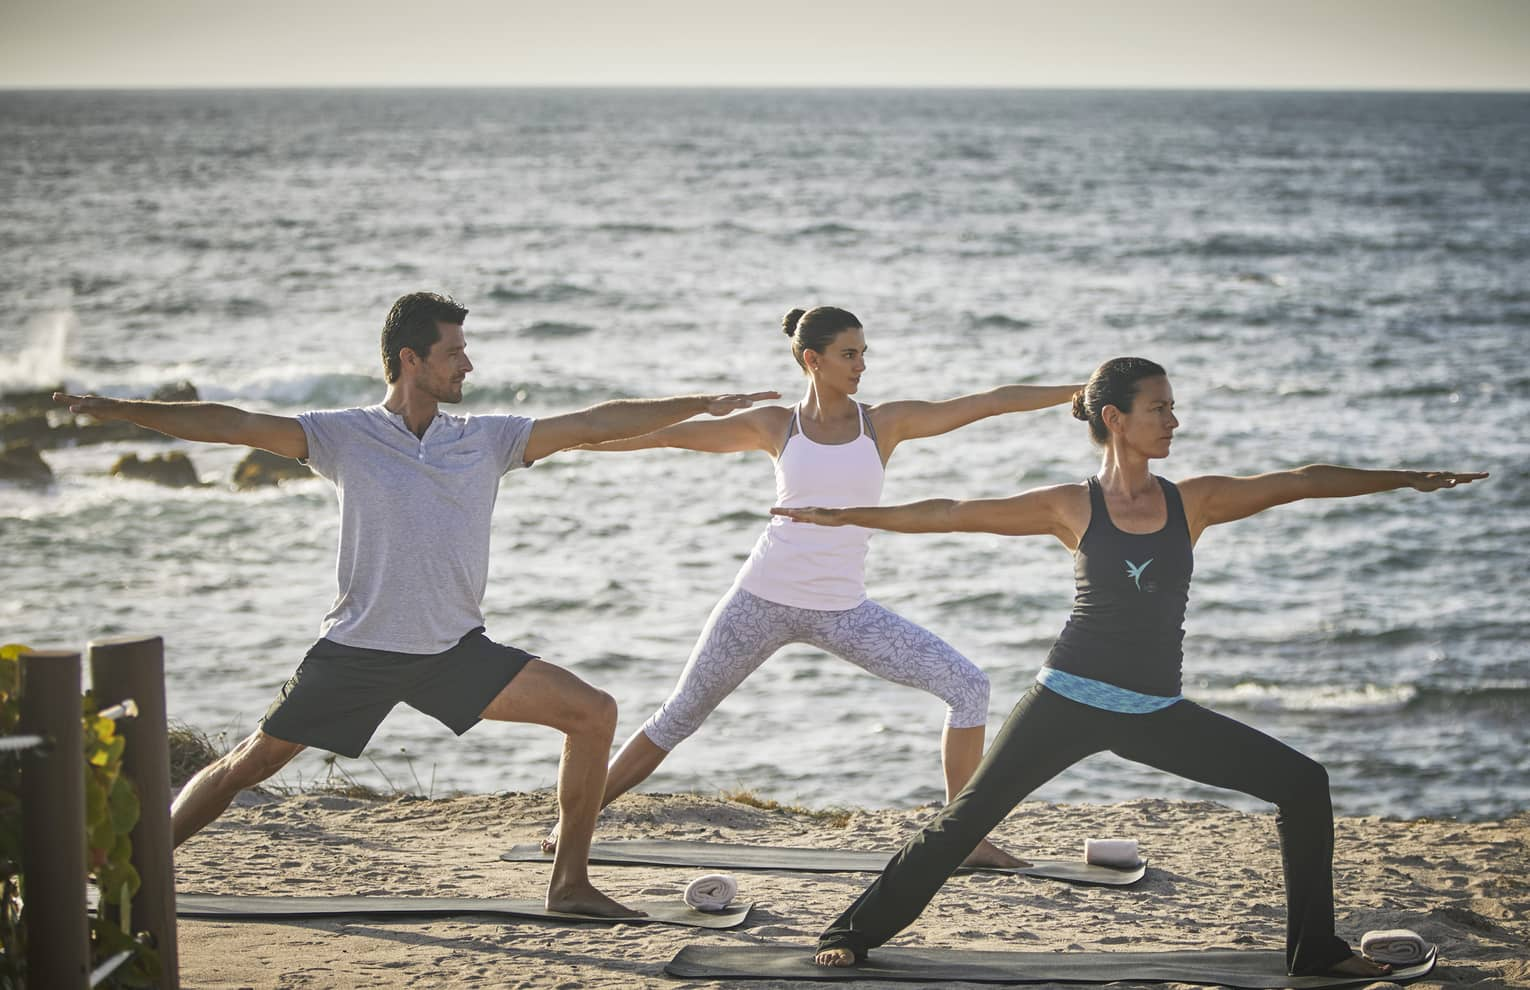 Three people with arms outstretched in yoga pose on beach